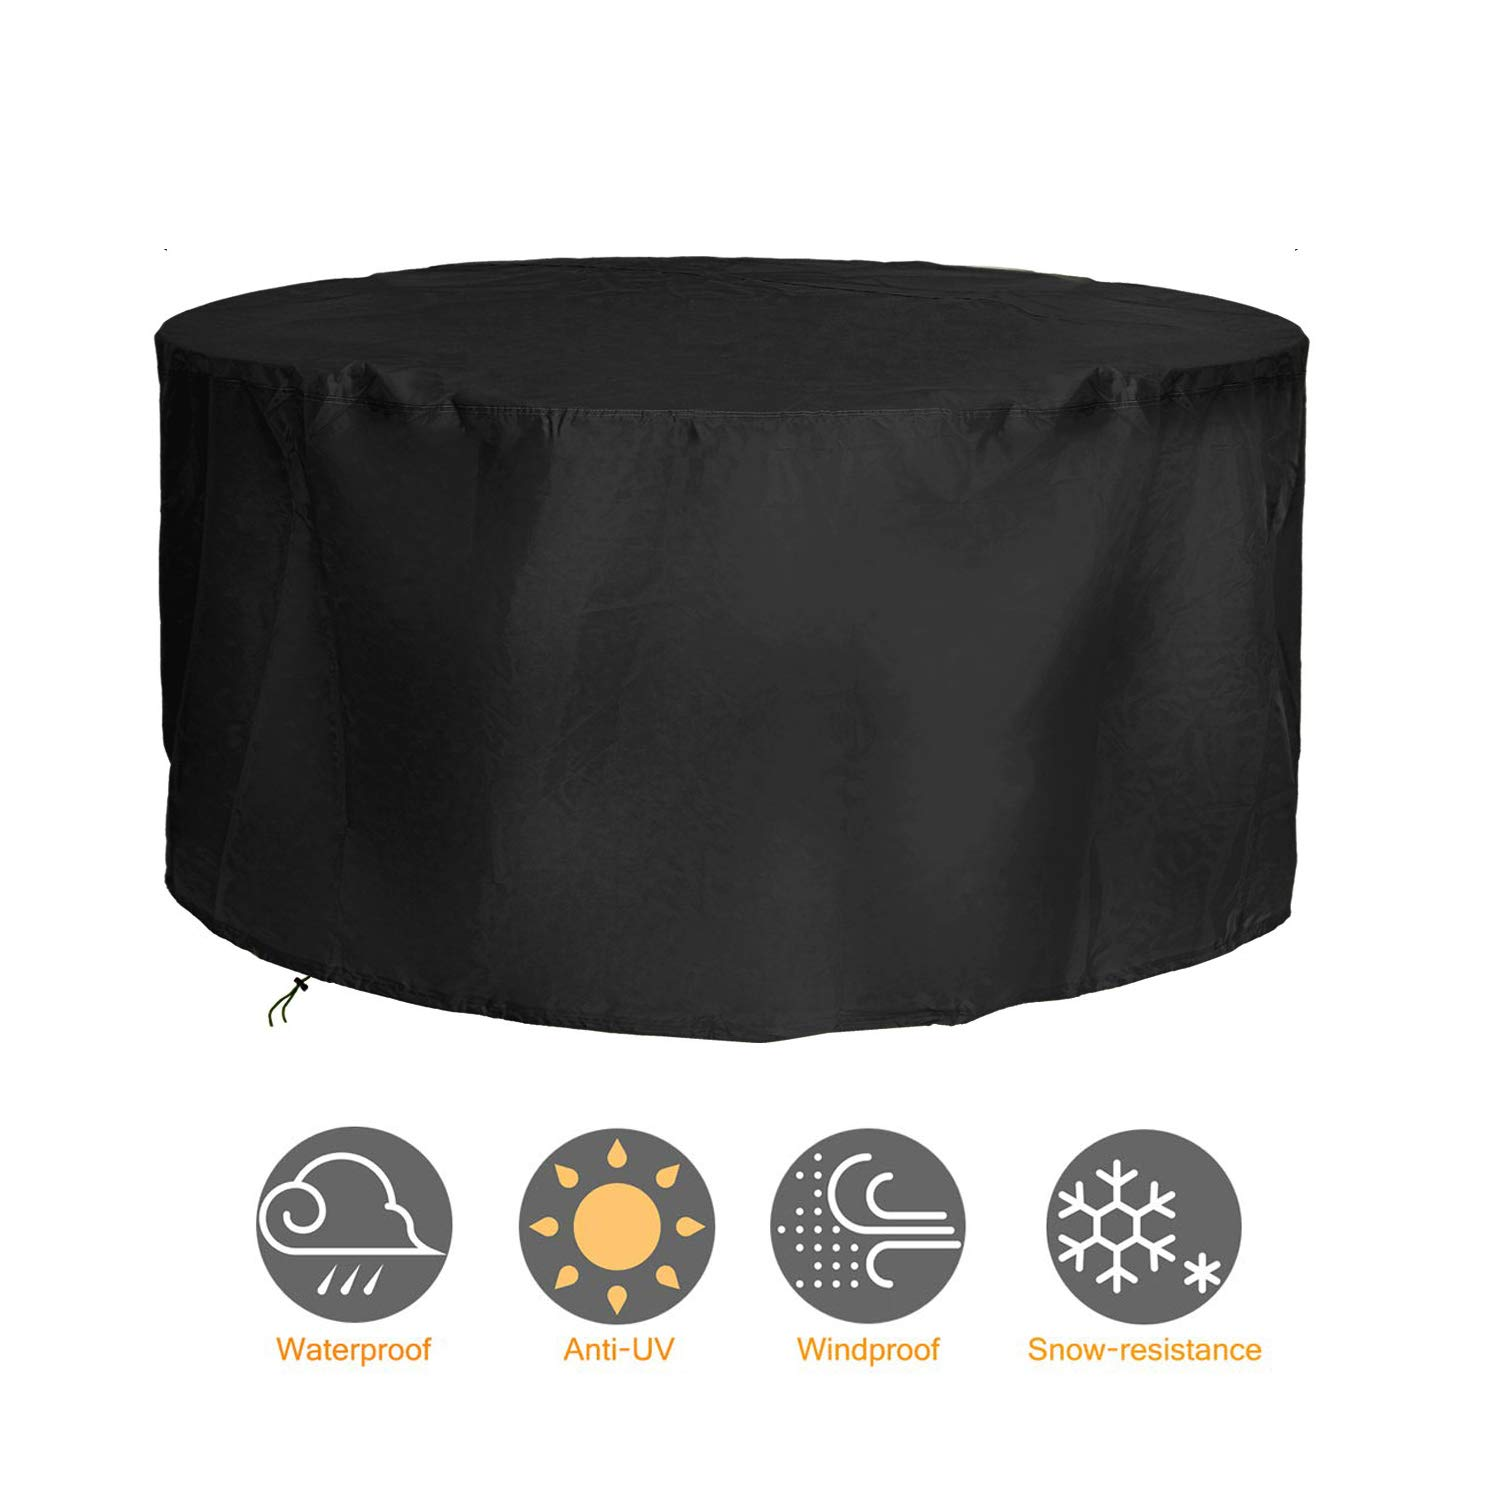 2.6ft x 8.3ft 5 YEAR GUARANTEE Woodside Black 6-8 Seater Round Outdoor Garden Patio Furniture Set Cover 0.8m x 2.52m